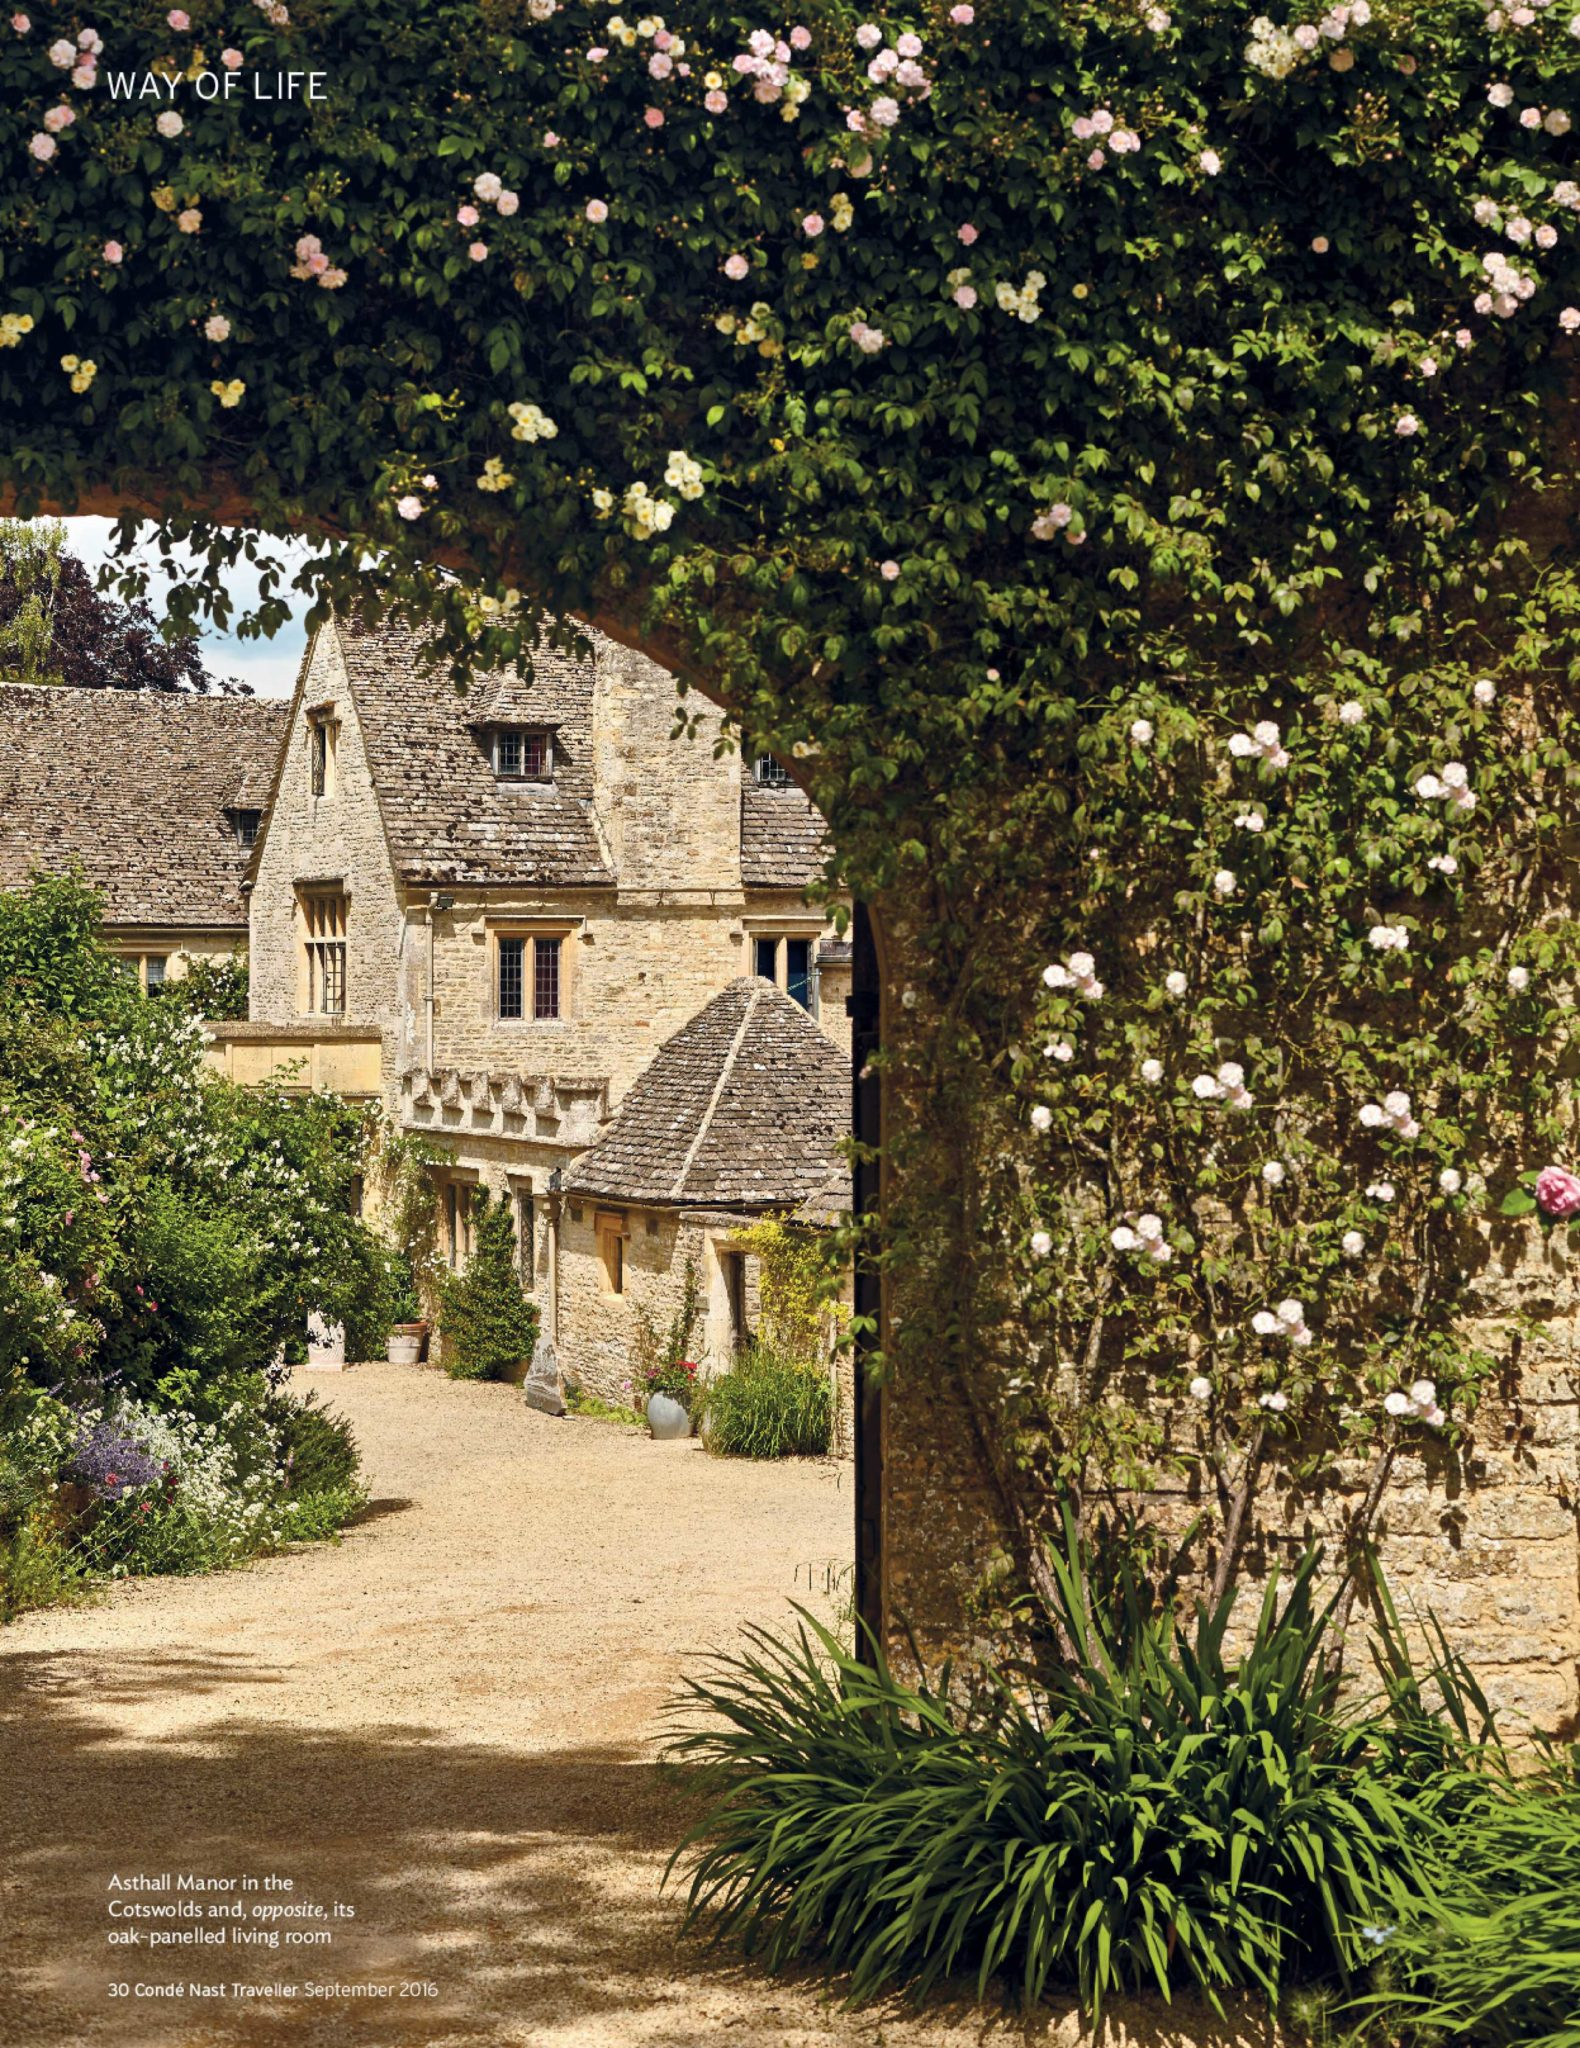 Asthall-Manor-Cotswolds-Sunny-Day